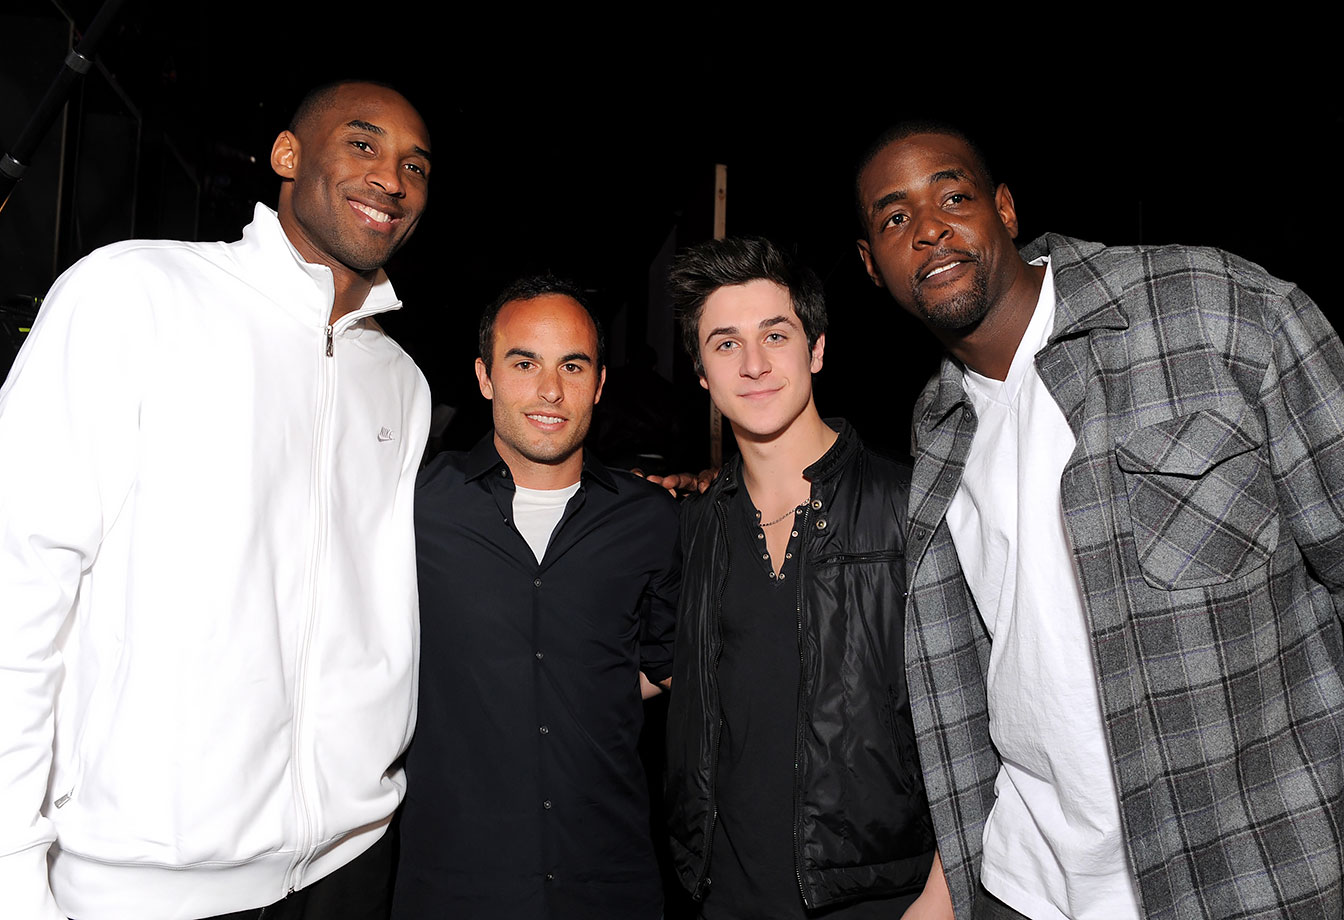 Kobe Bryant, Landon Donovan, David Henrie and Chris Webber attend the Cartoon Network Hall of Game Awards held at The Barker Hanger in Santa Monica, Calif.